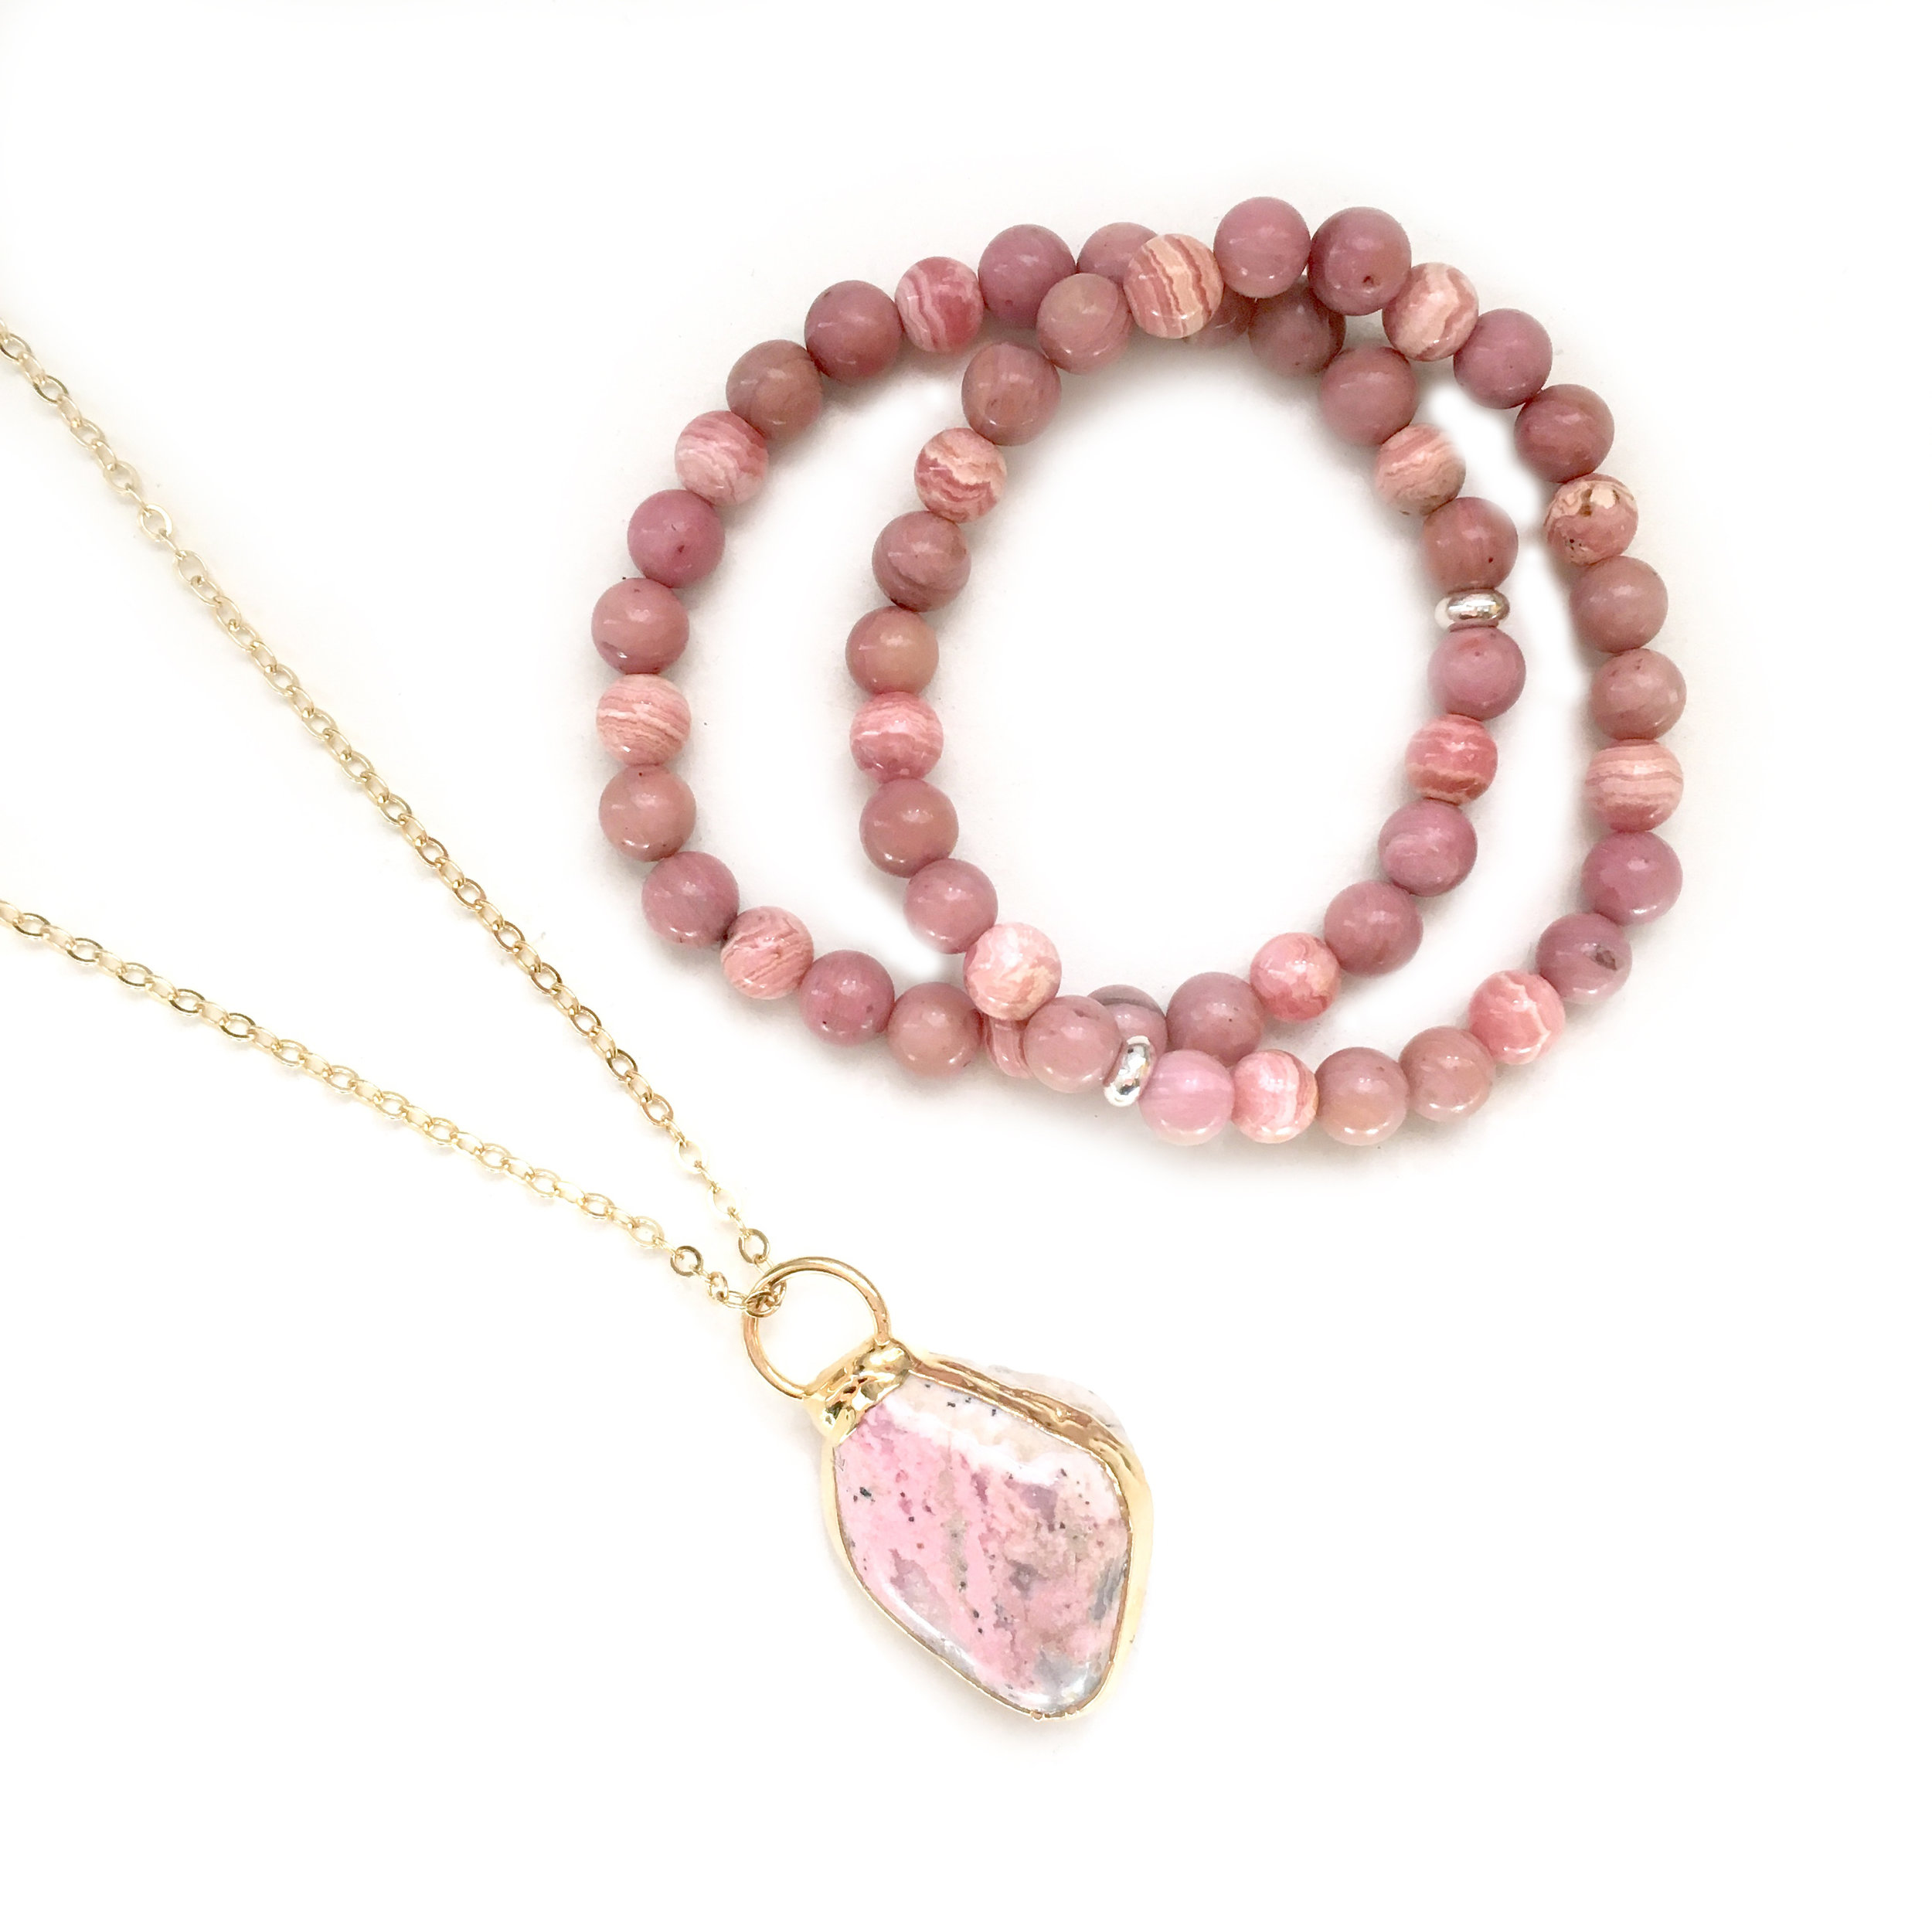 Rhodochrosite Necklace, and Bracelets containing Rhodochrosite and Pink Rhodonite